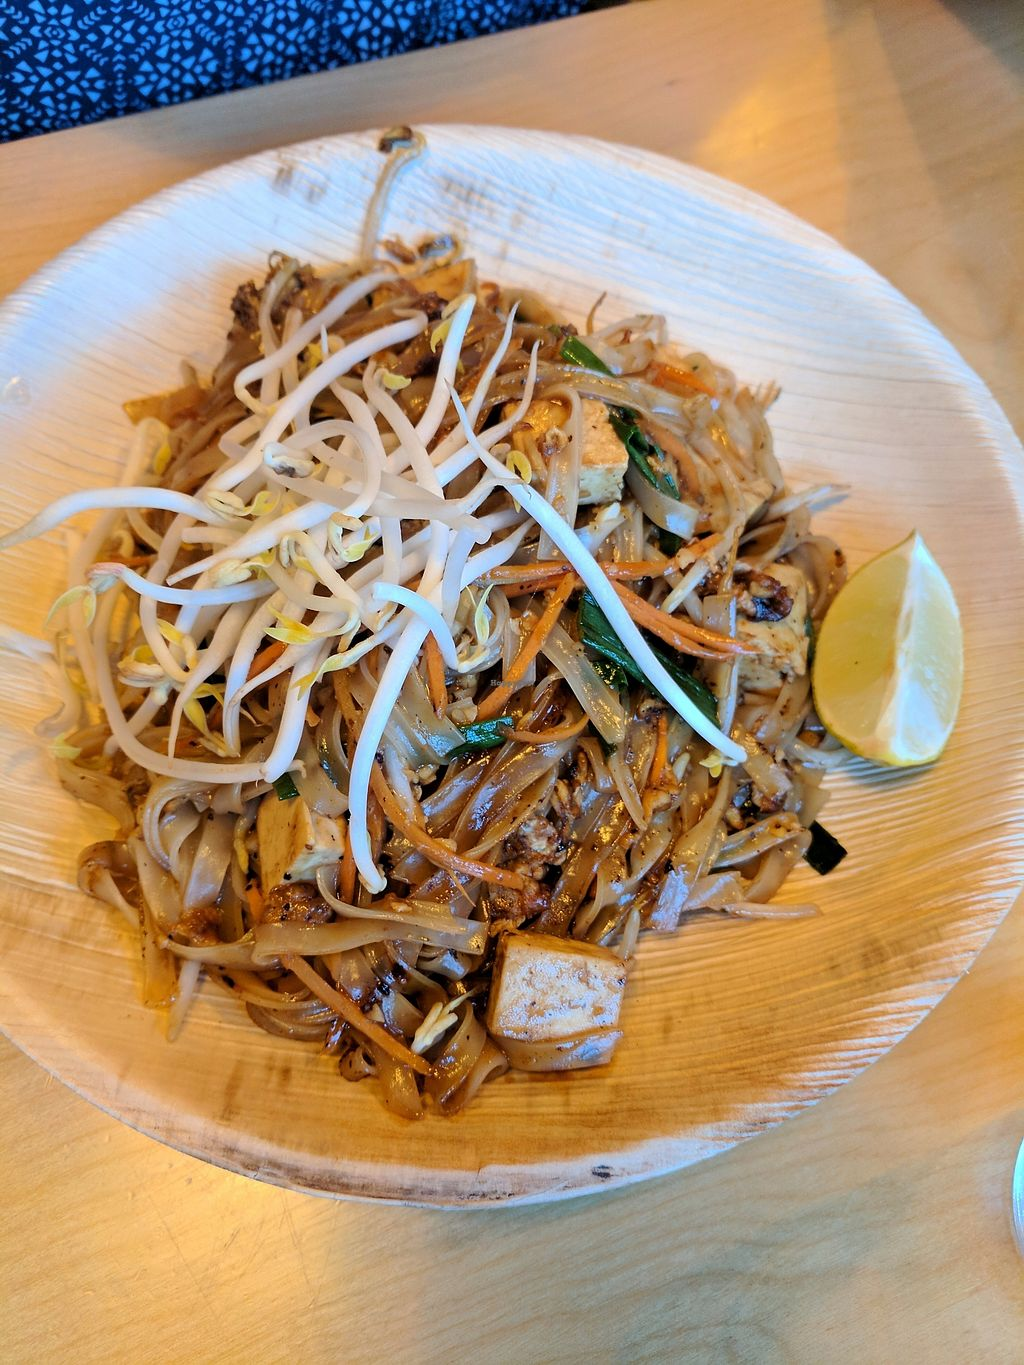 """Photo of Chang Ba Thai Restaurant  by <a href=""""/members/profile/eee135"""">eee135</a> <br/>Pad Thai (vegan) <br/> October 14, 2017  - <a href='/contact/abuse/image/102849/314997'>Report</a>"""